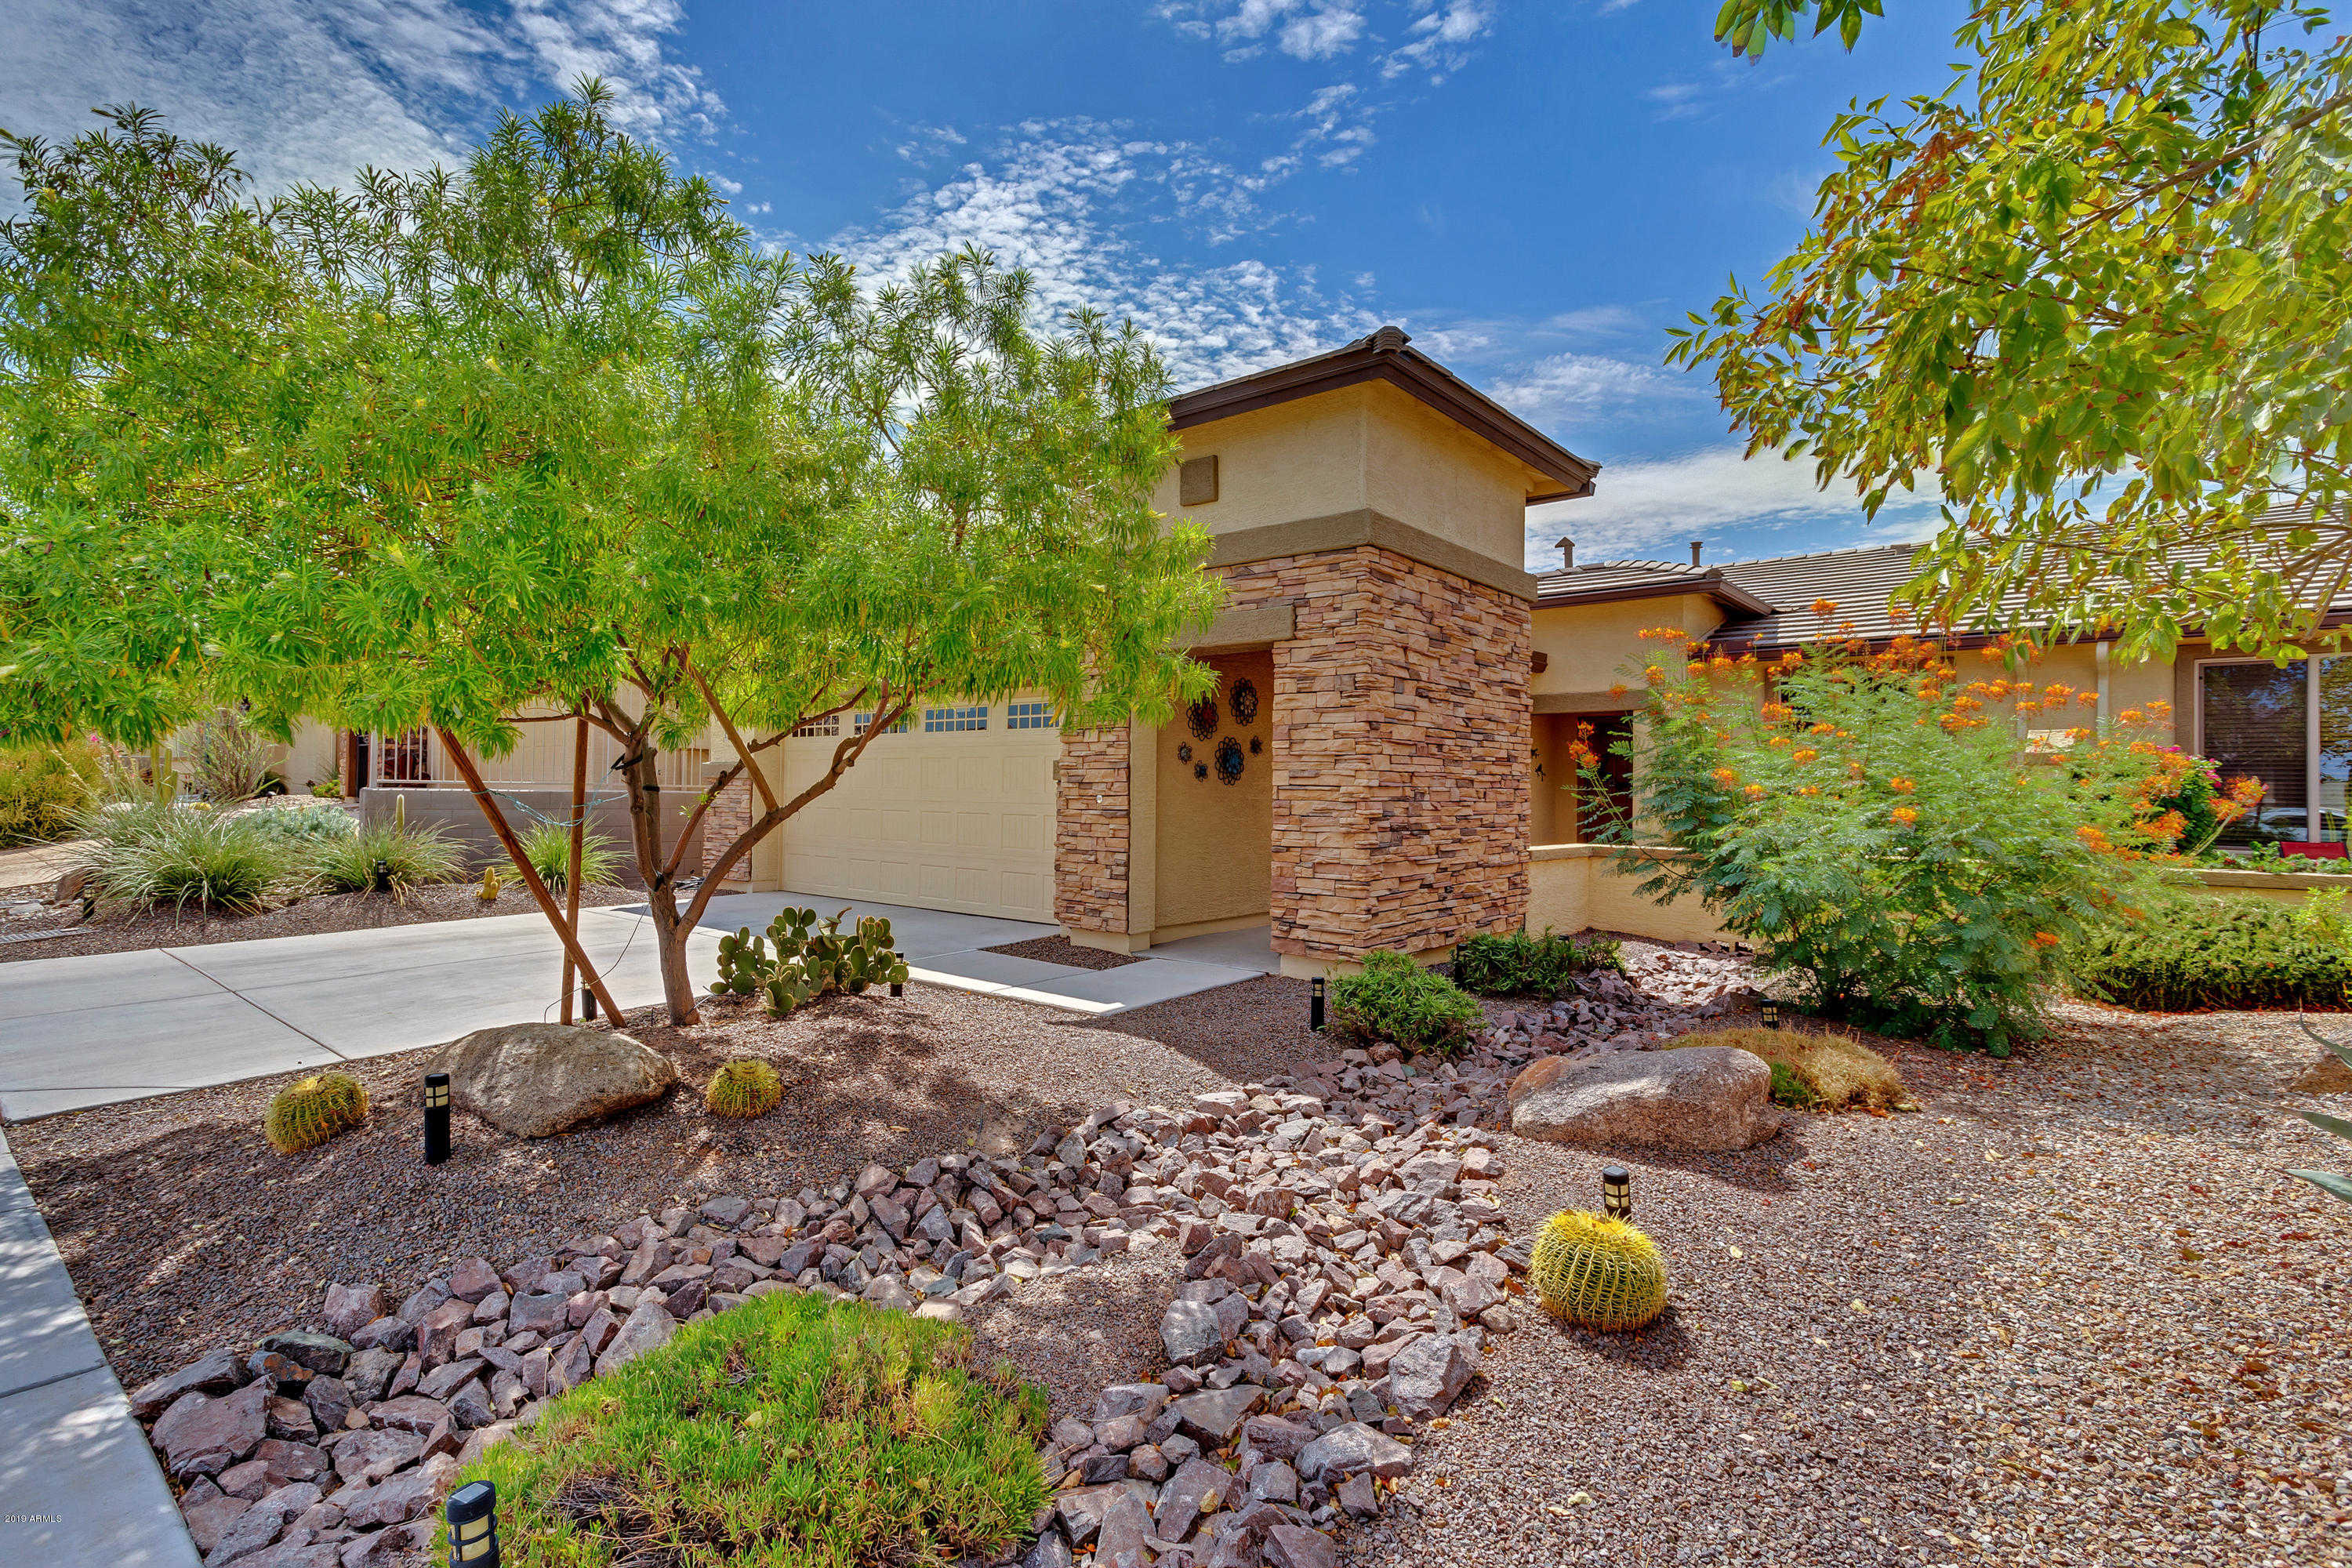 $244,900 - 2Br/2Ba -  for Sale in Province At Estrella Mountain Ranch Parcel 5/cantamia, Goodyear